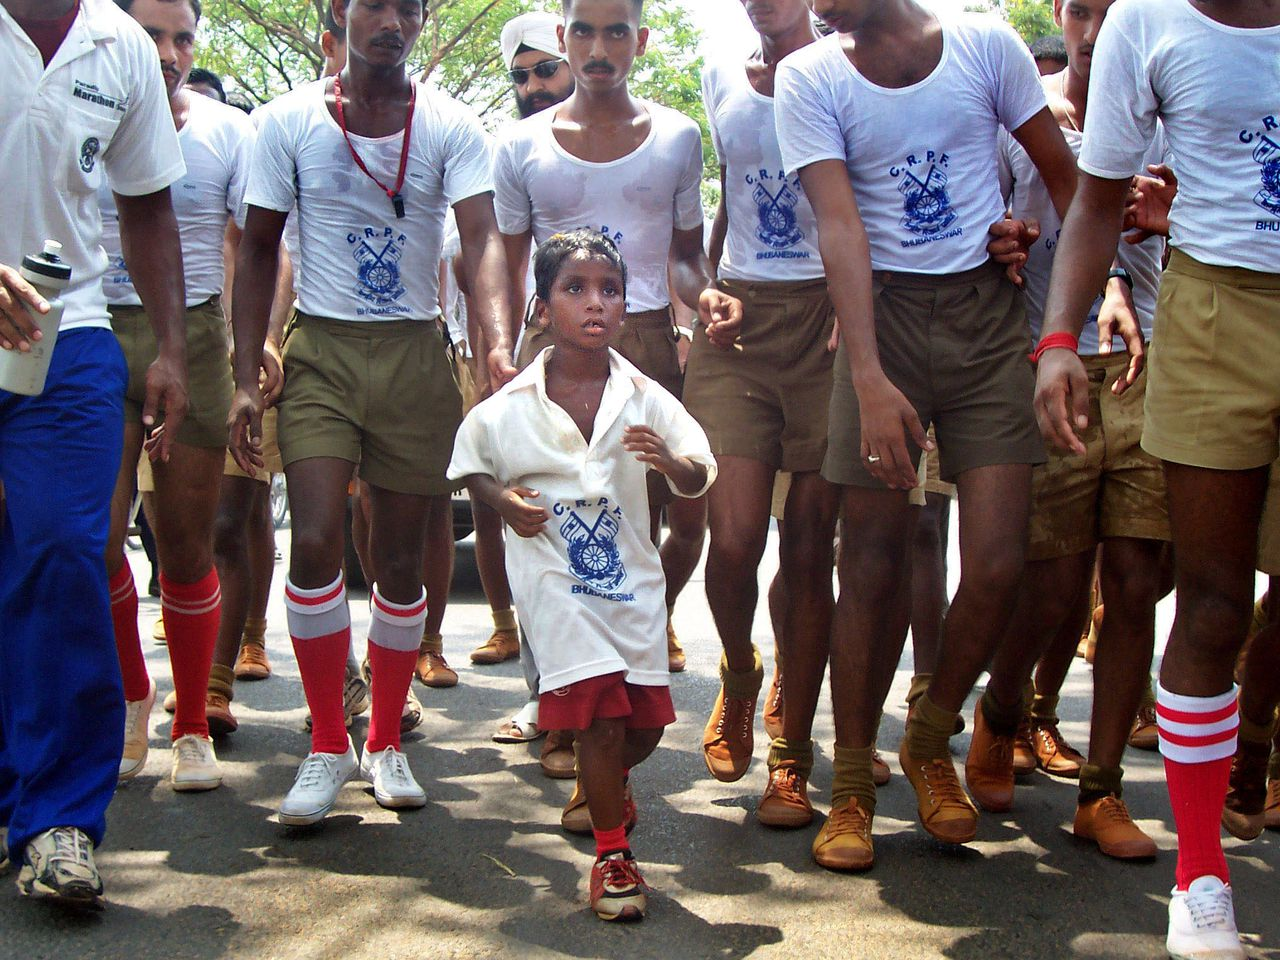 """Ik heb heerlijk gerend vandaag. Ik kan zoveel rennen als ik wil"", zei Budhia Singh (4) nadat hij 7 uur had hardgelopen. Foto AP, Biswaranjan Rout Budhia Singh, 4, runs along with soldiers in Bhubaneswar, in the eastern Indian state of Orissa, Tuesday, May 2, 2006. Cheered by thousands, Singh ran 65 kilometers (40 miles) Tuesday to enter the country's foremost record book. Singh, a slum resident from Orissa whose talent was discovered by a local sports coach, was escorted by doctors and 300 paramilitary cadets of the Central Reserve Police Force which plans to sponsor his upbringing. (AP Photo/Biswaranjan Rout)"